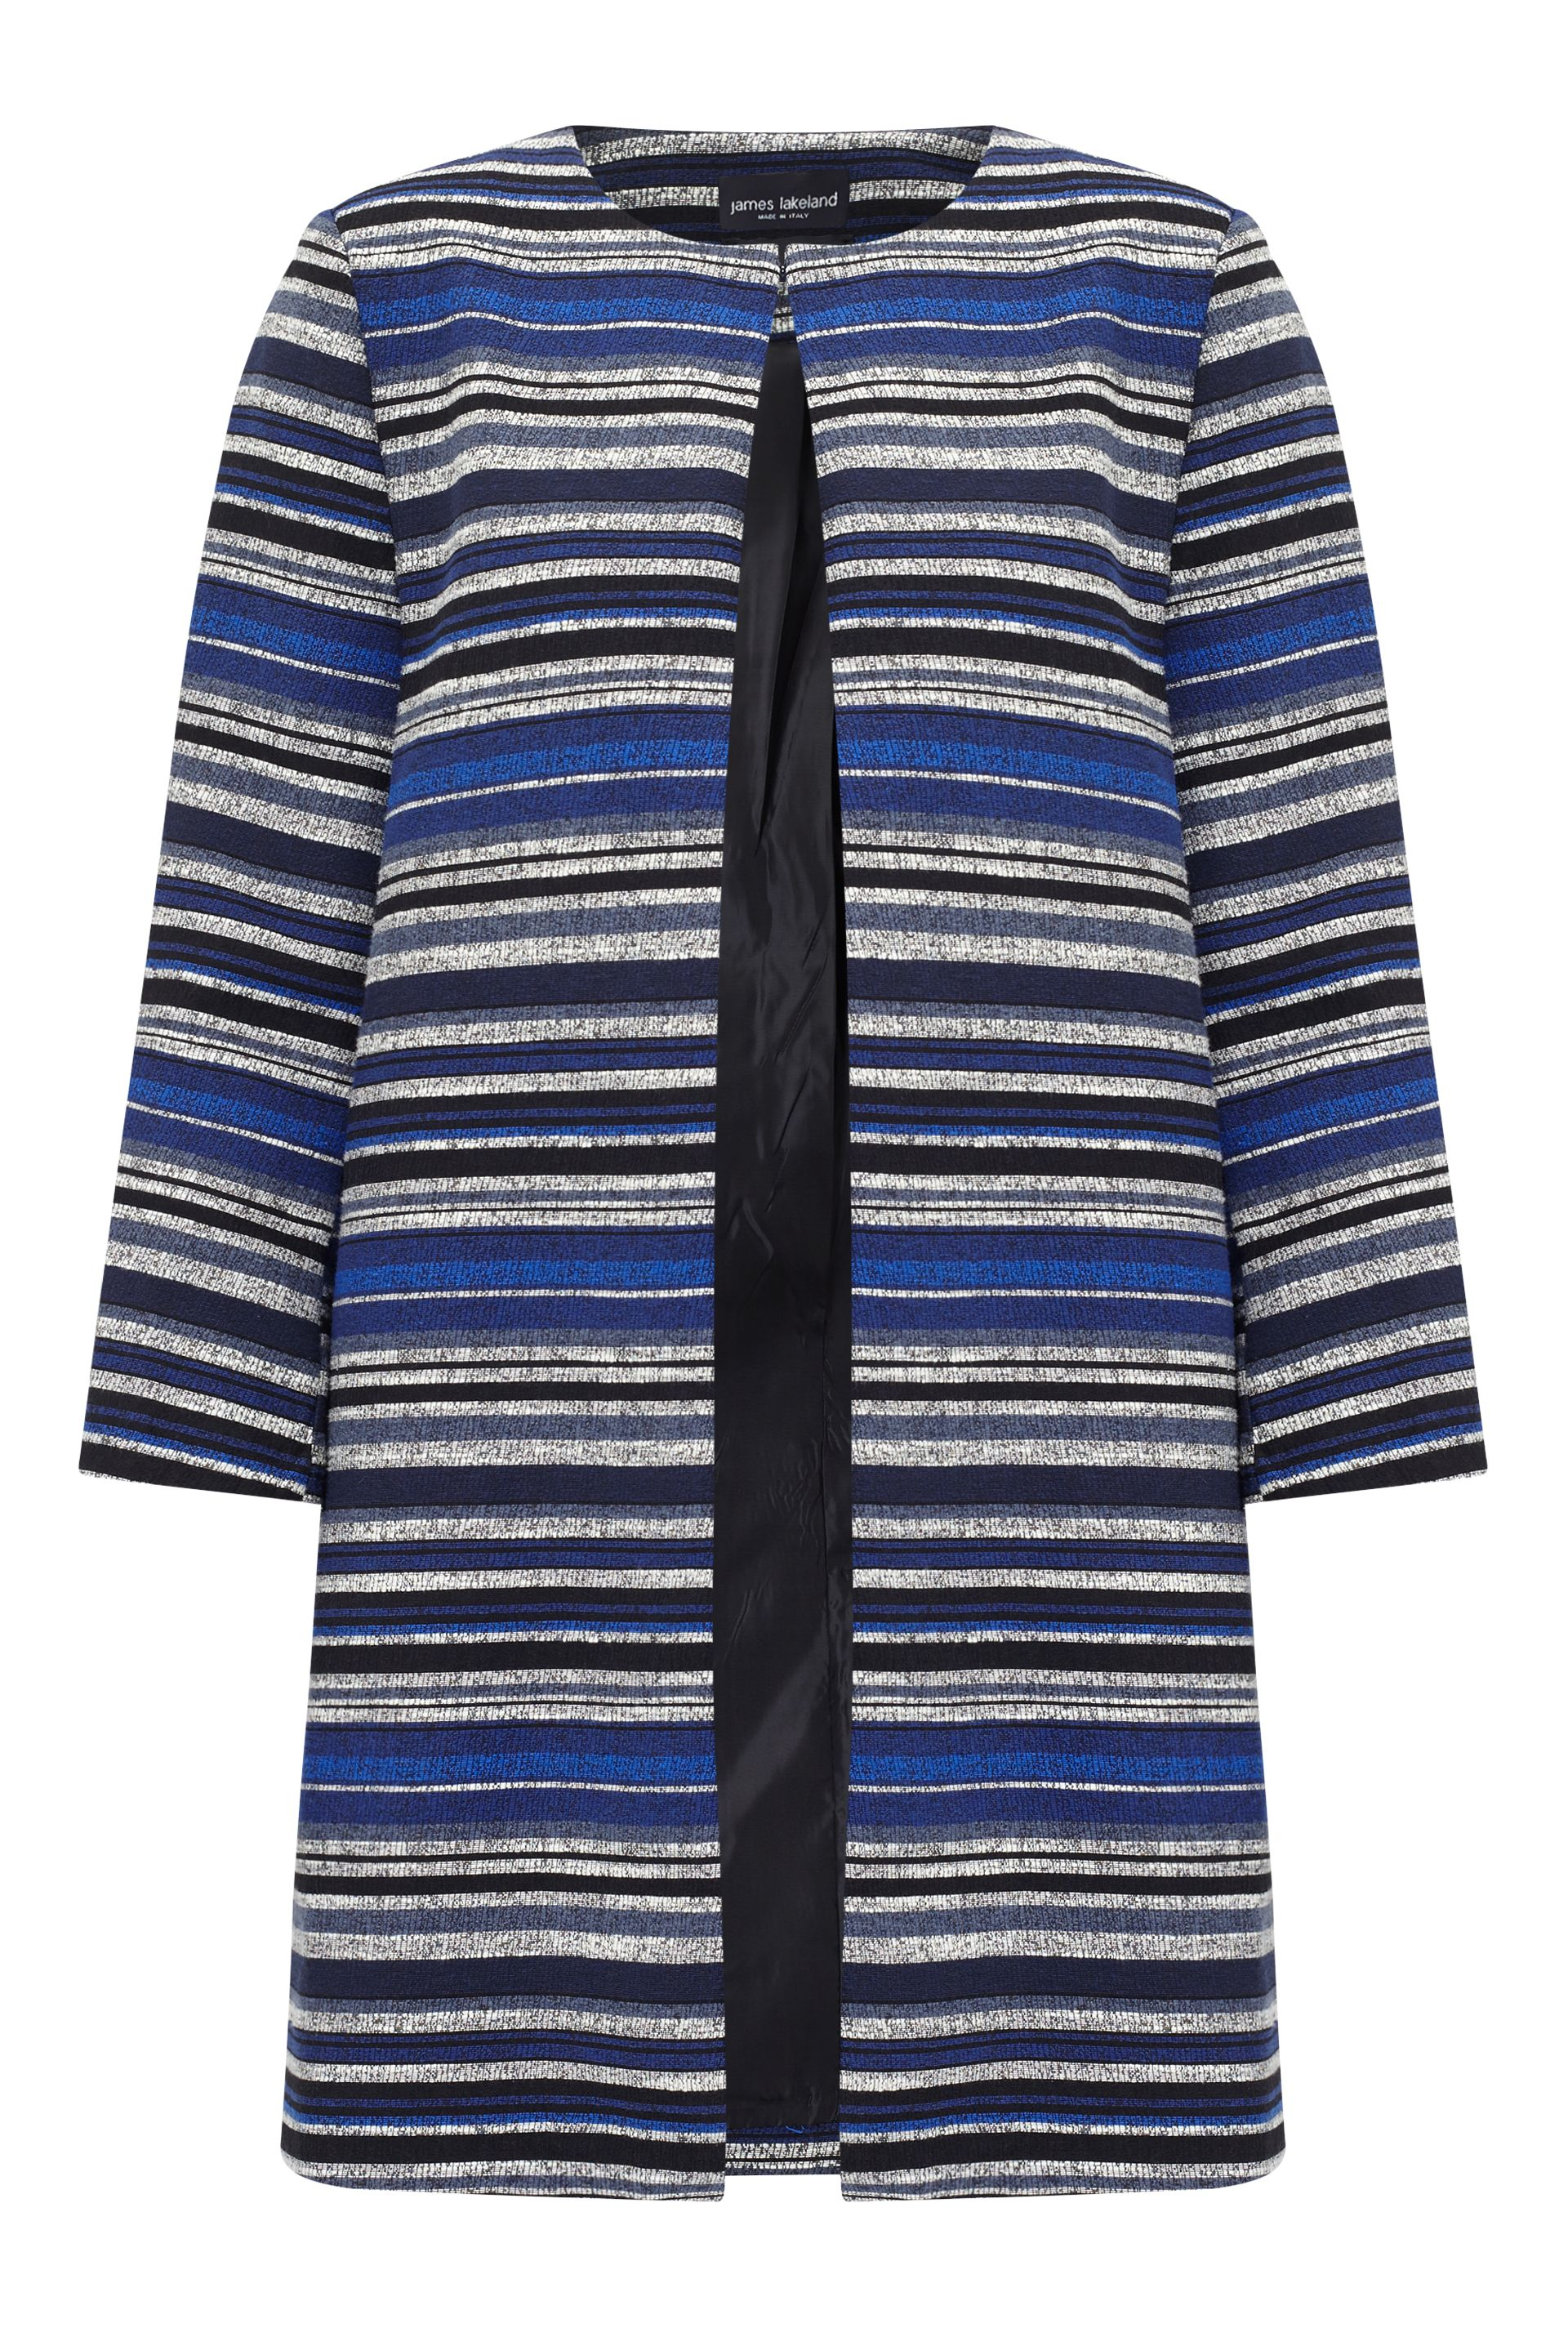 James Lakeland Stripe Jacket, Blue